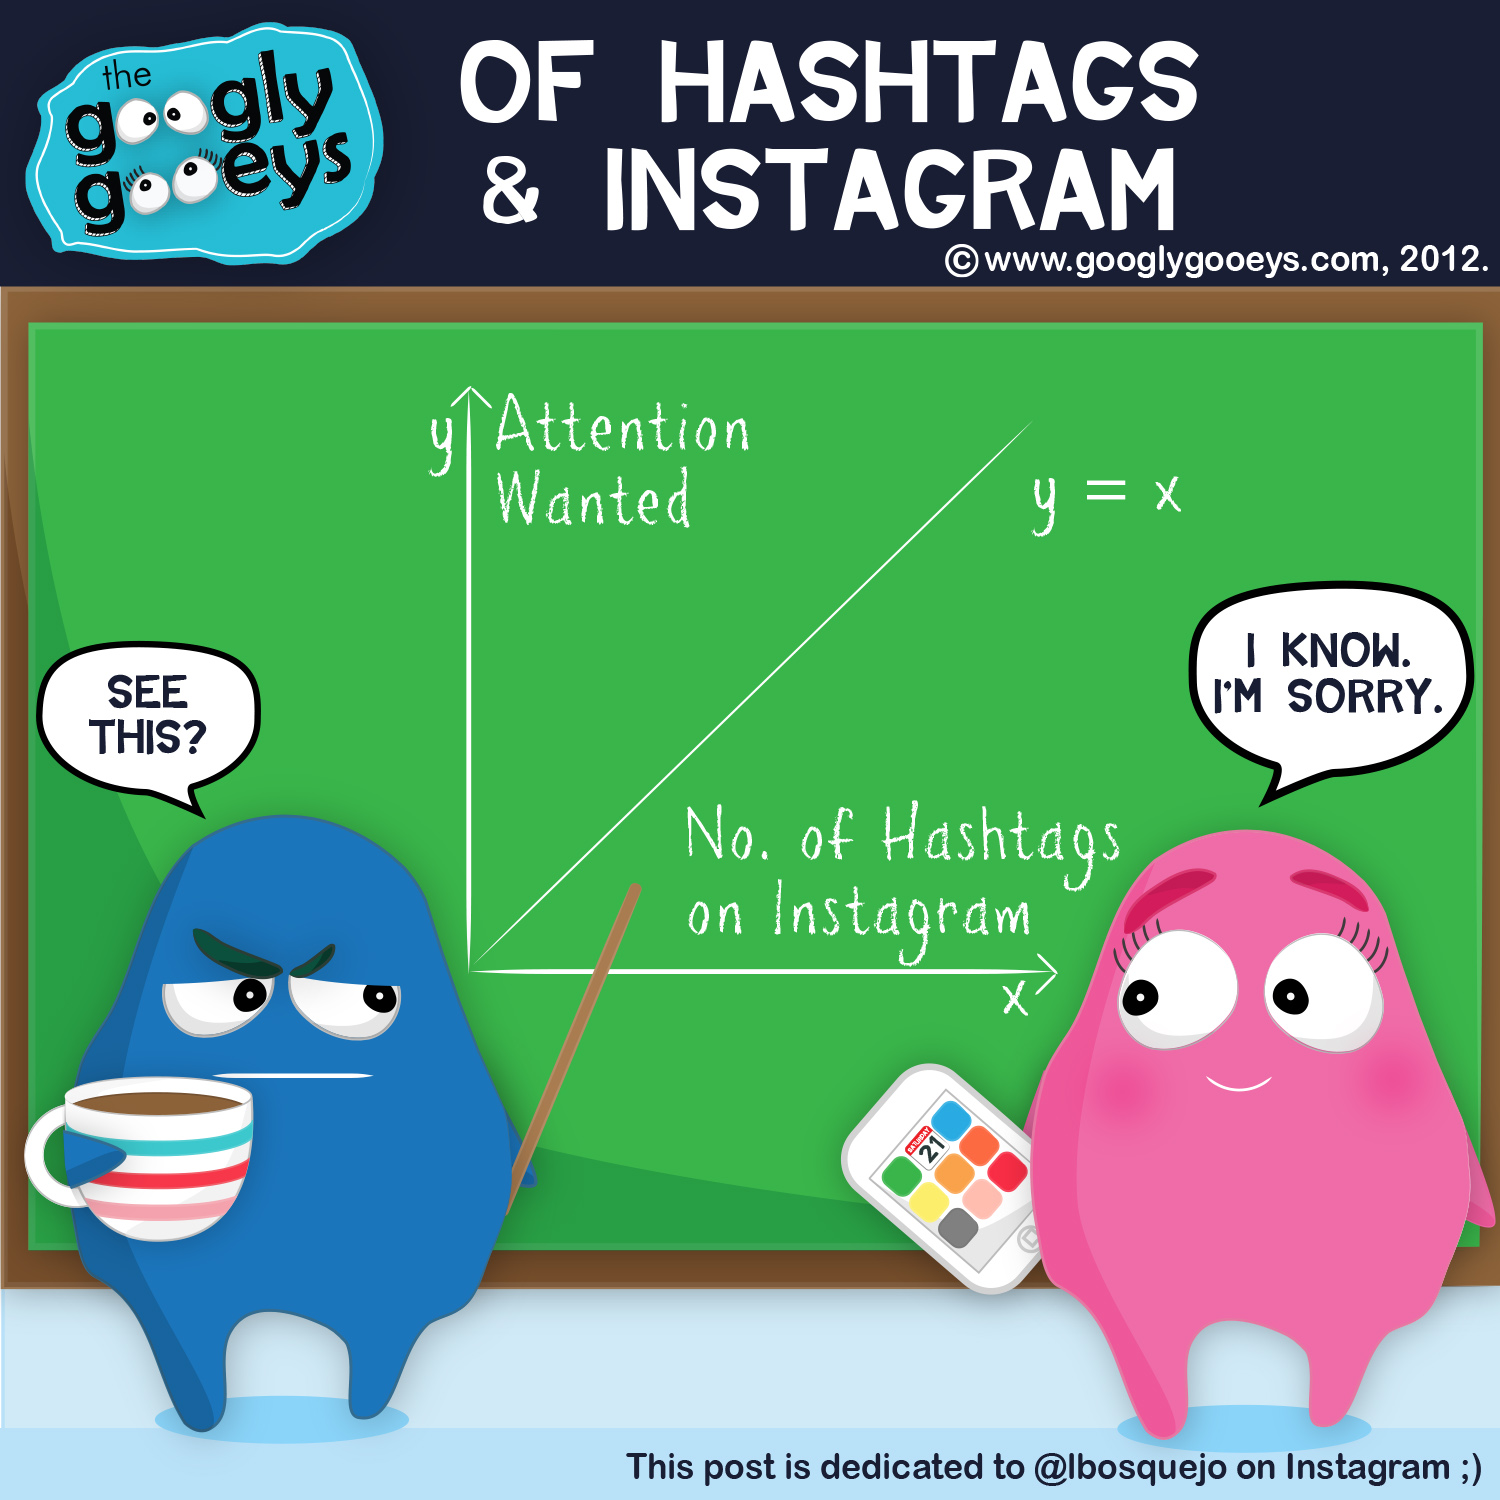 Instagram Hashtags : Number of Hashtags vs. Attention Needed Chart